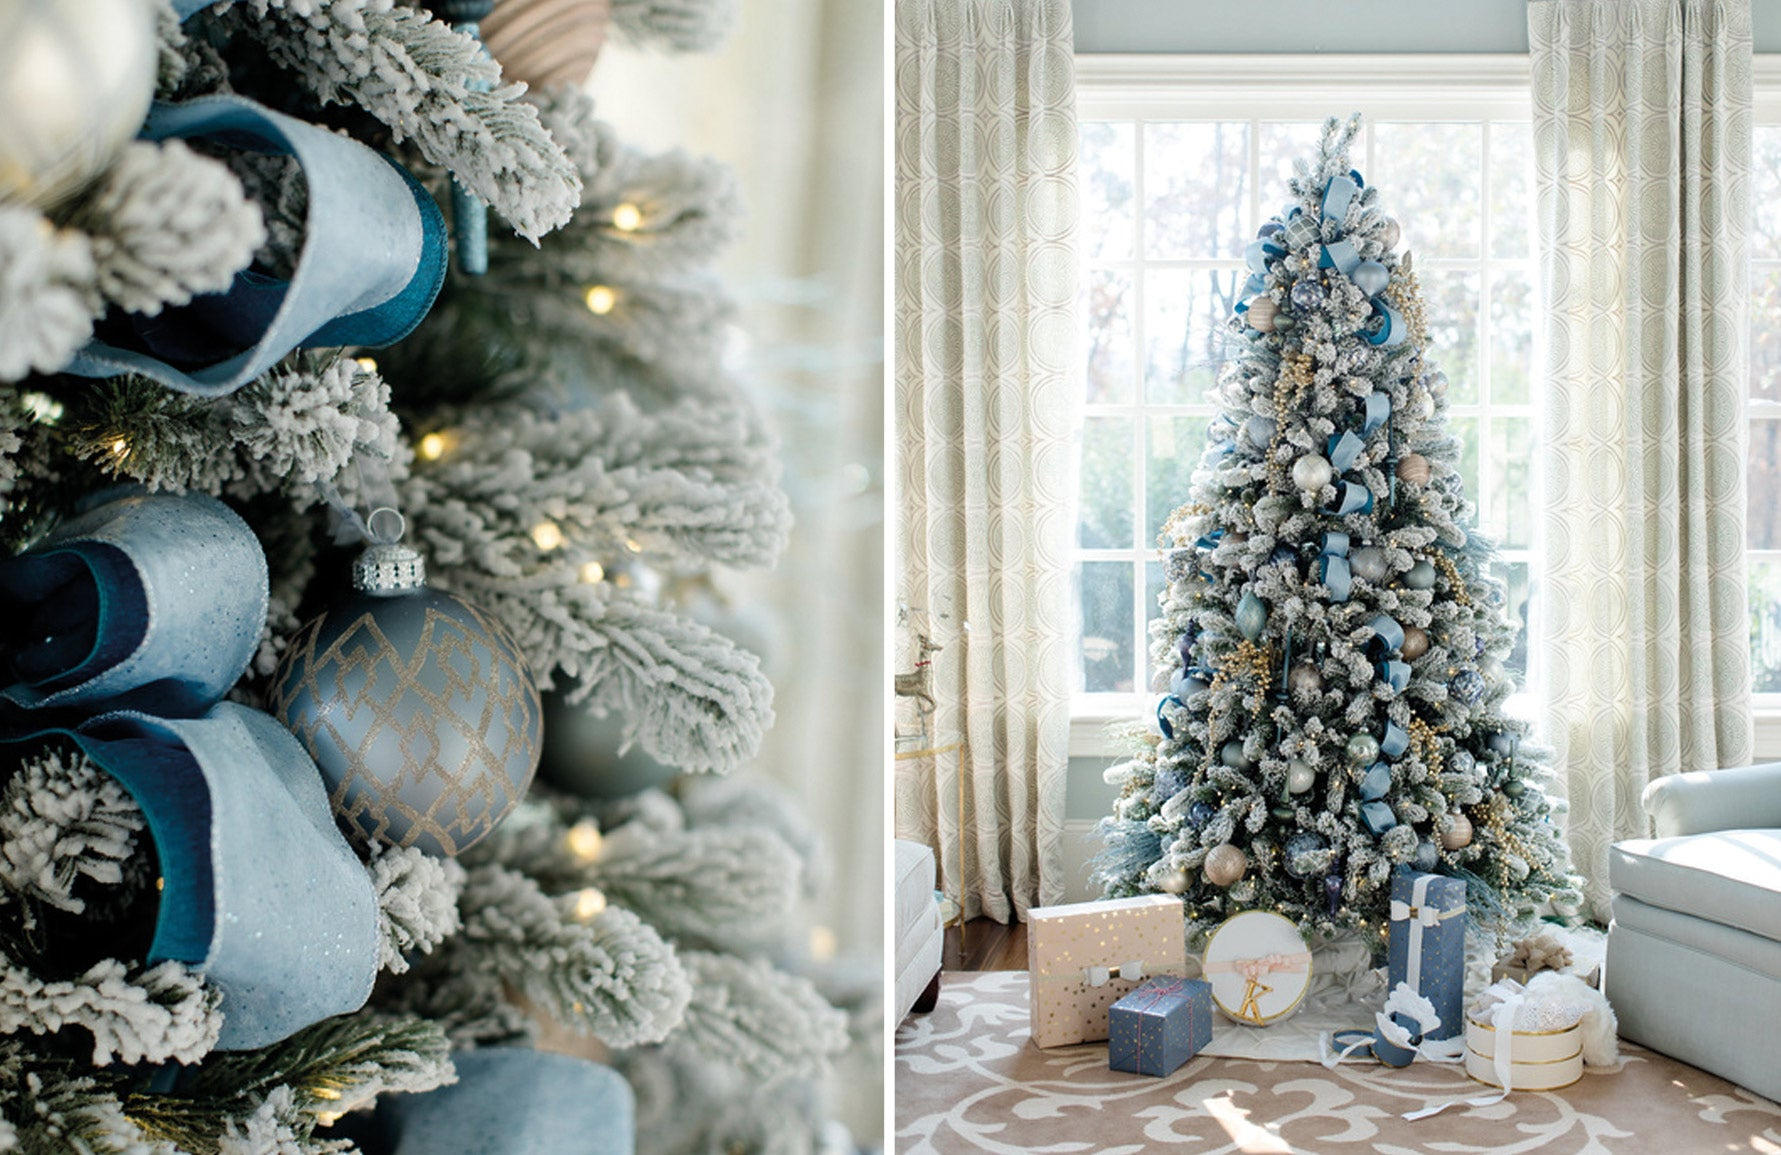 Christmas Decorating Ideas | Blue Christmas Decor | Interior by Revamped | Photography by Sara D. Harper | Shop now at LuxDeco.com